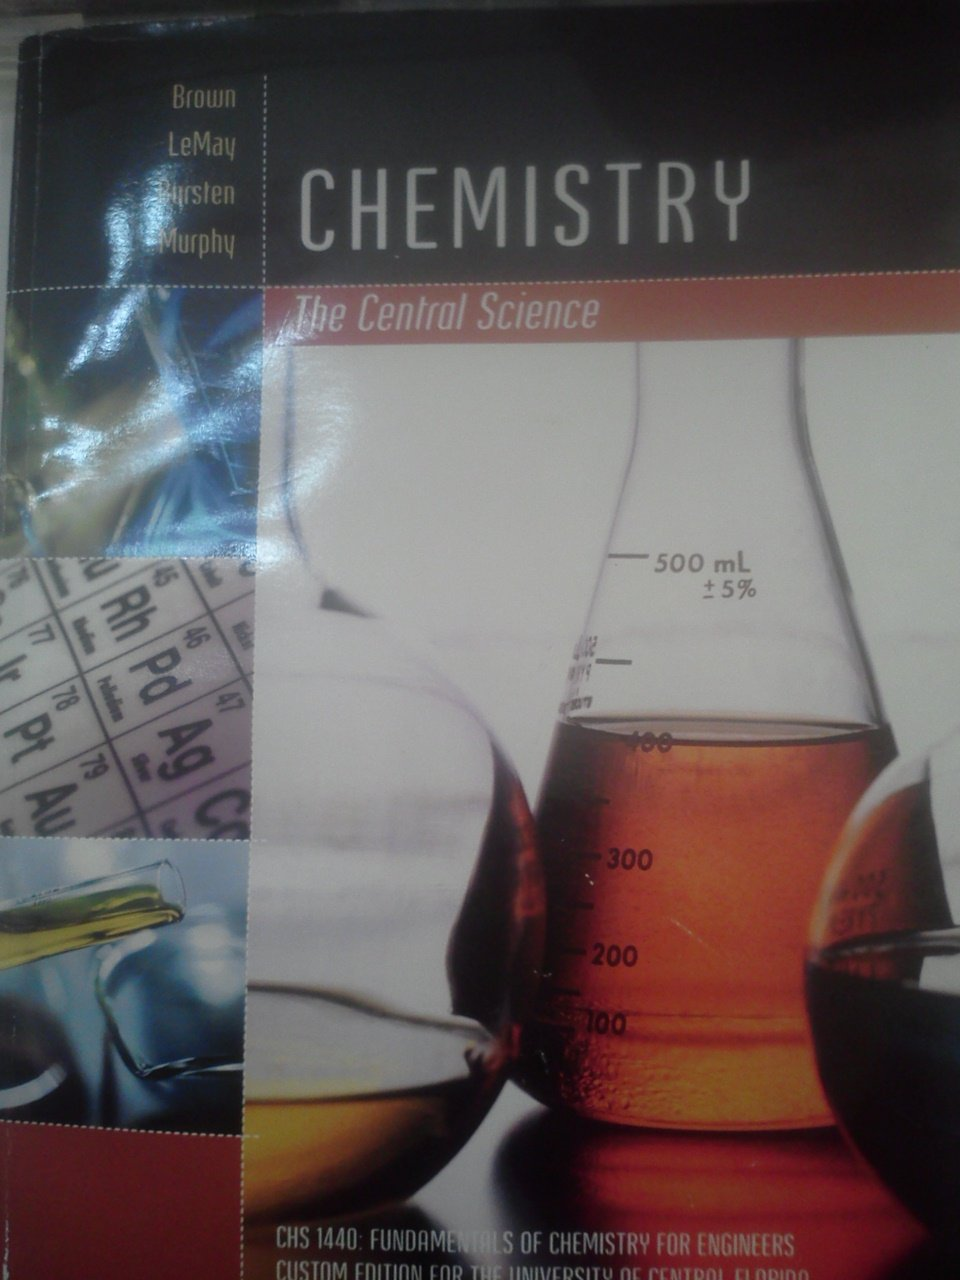 Download Chemistry the Central Science (CHS 1440: FUNDAMENTALS OF CHEMISTRY FOR ENGINEERS/ CUSTOM EDITION FOR THE UNIVERSITY OF CENTRAL FLORIDA) pdf